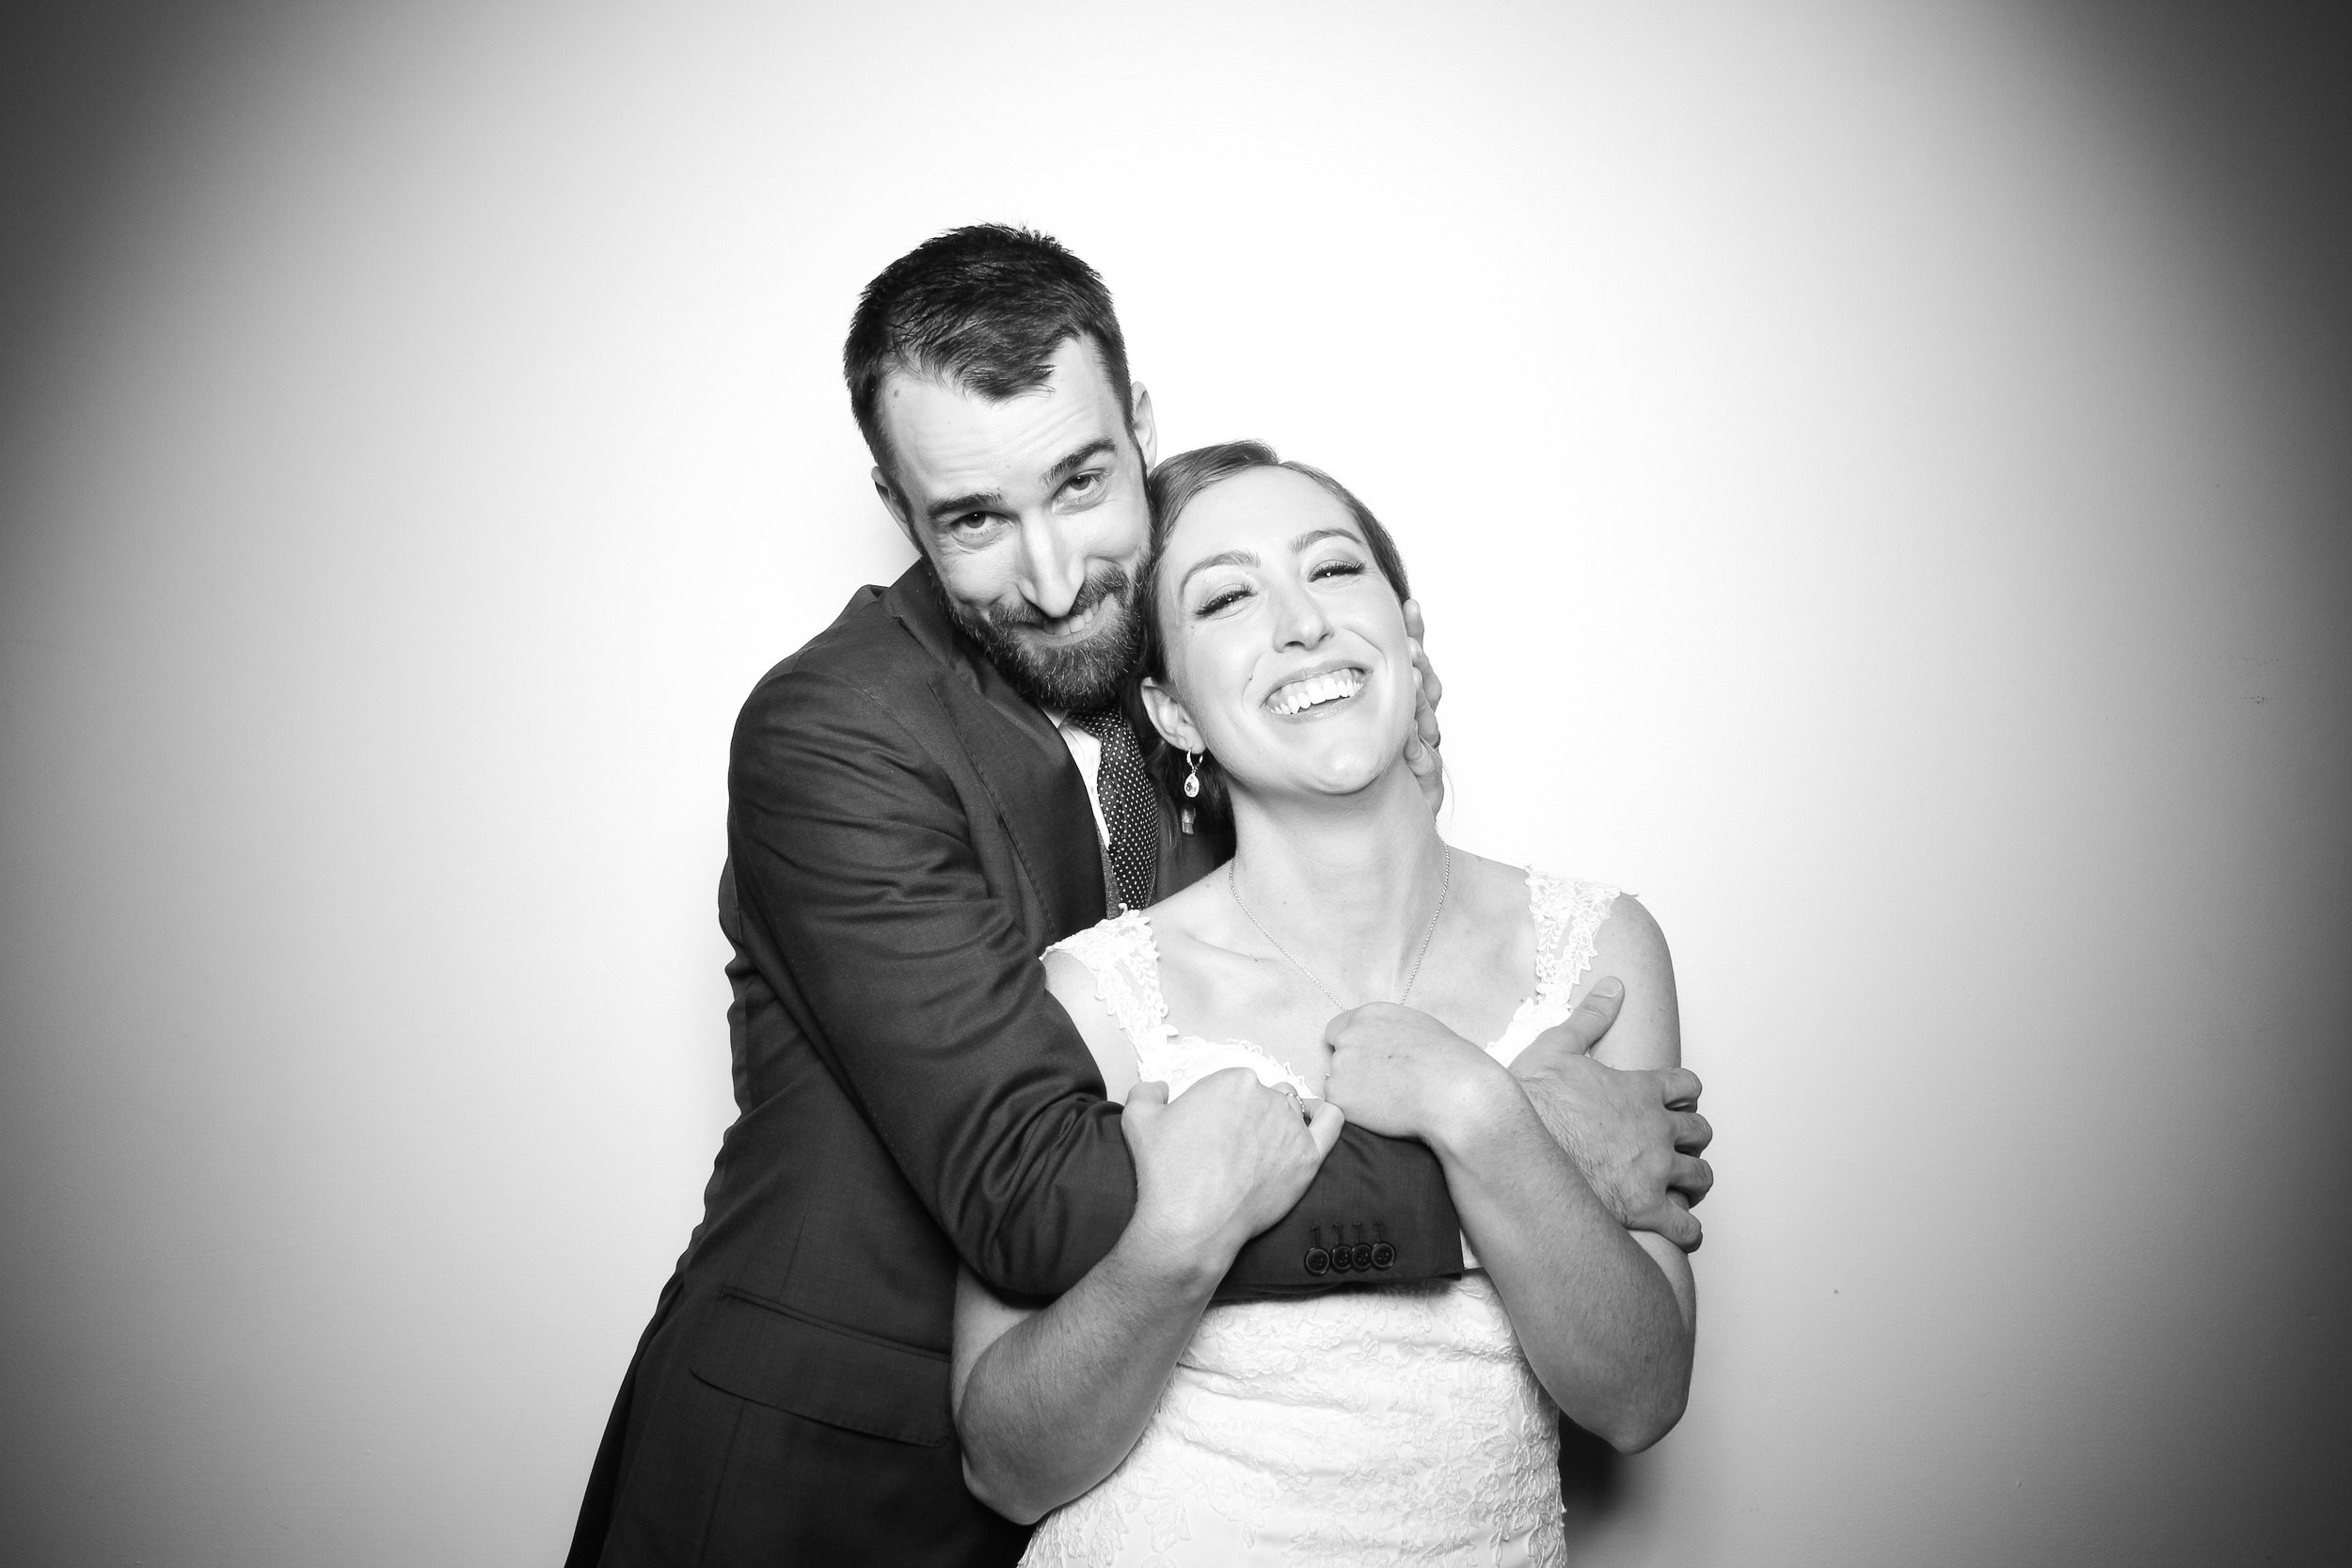 Chicago_Vintage_Wedding_Photobooth_Ravenswood_03.jpg